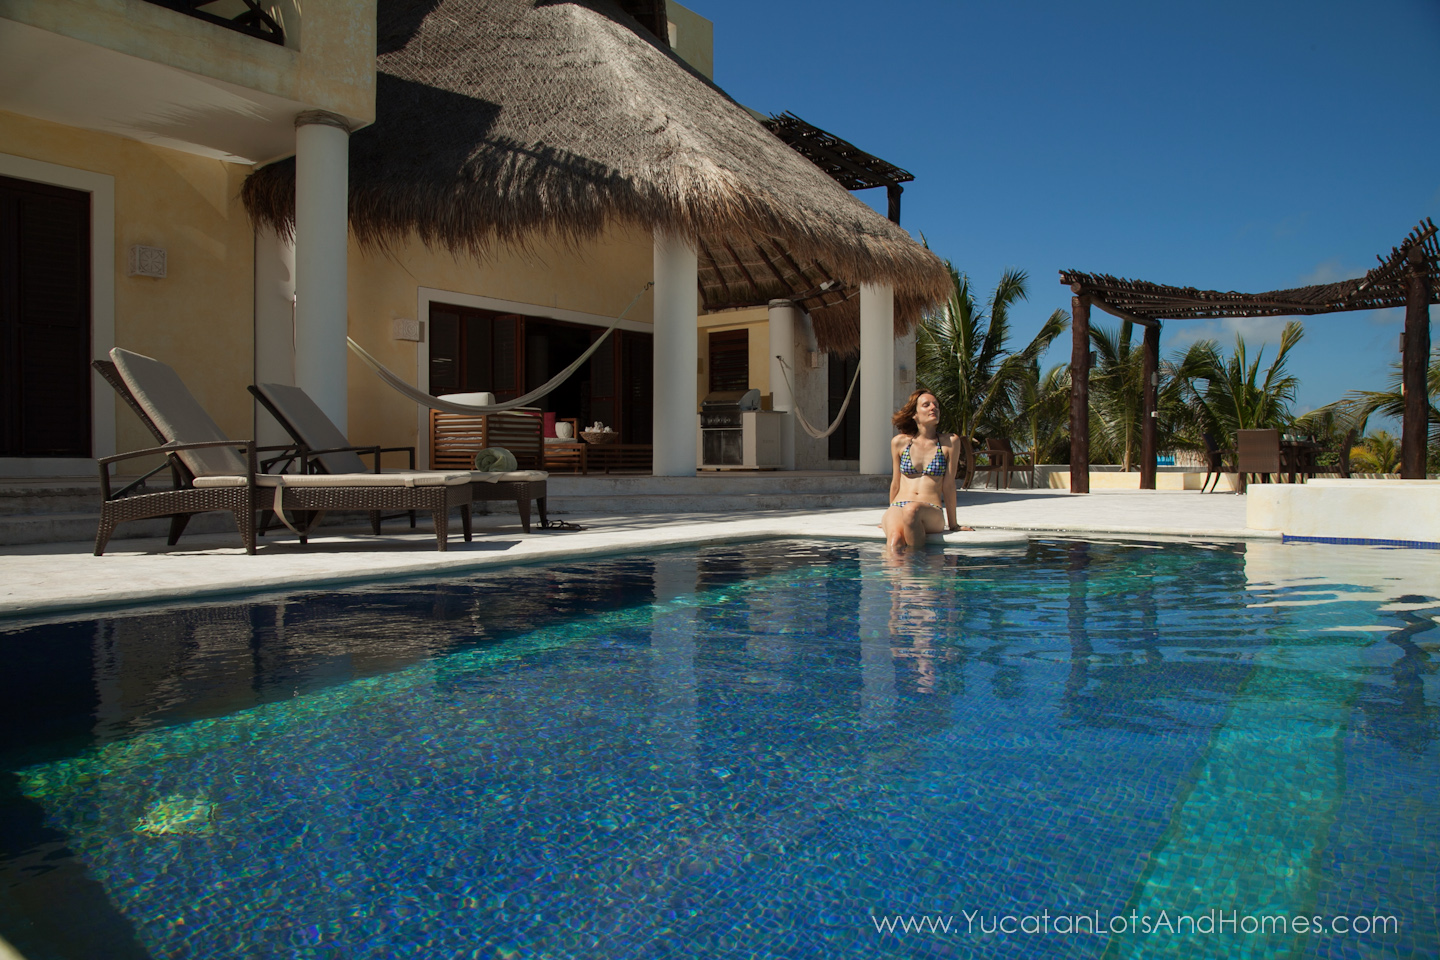 Beachfront Home for Sale, Casa La Palapa